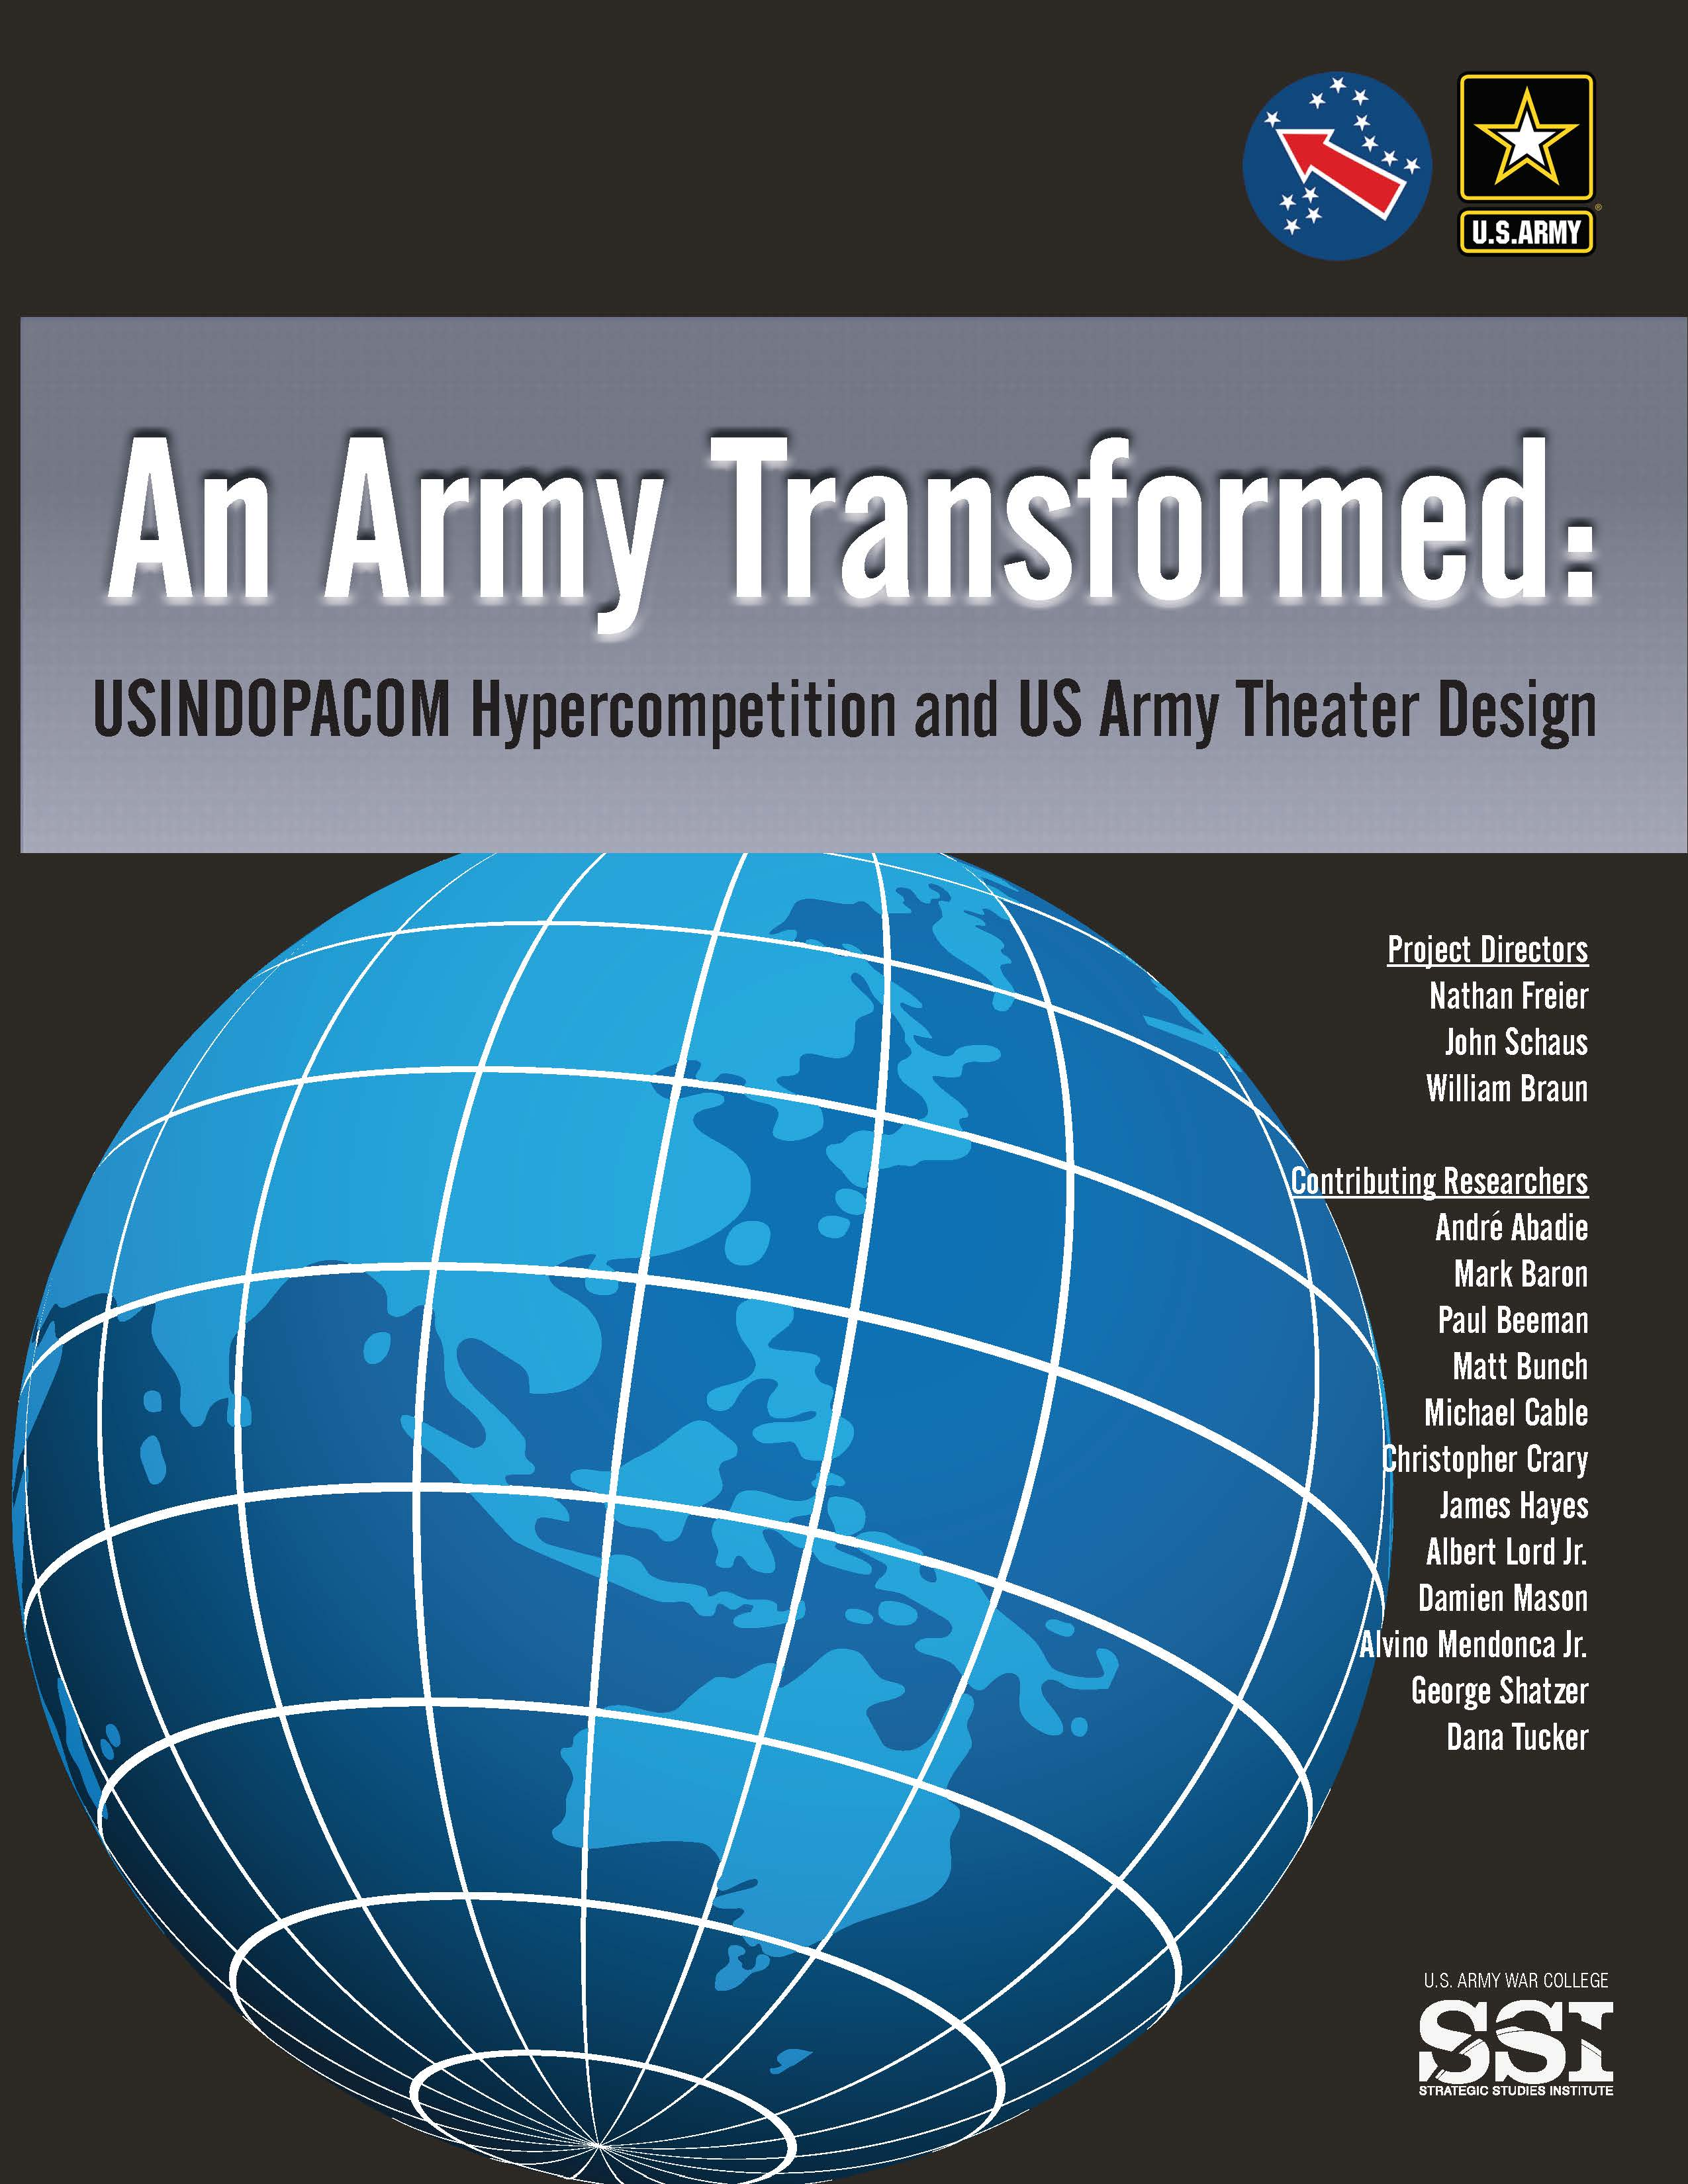 An Army Transformed: USINDOPACOM Hypercompetition and US Army Theater Design